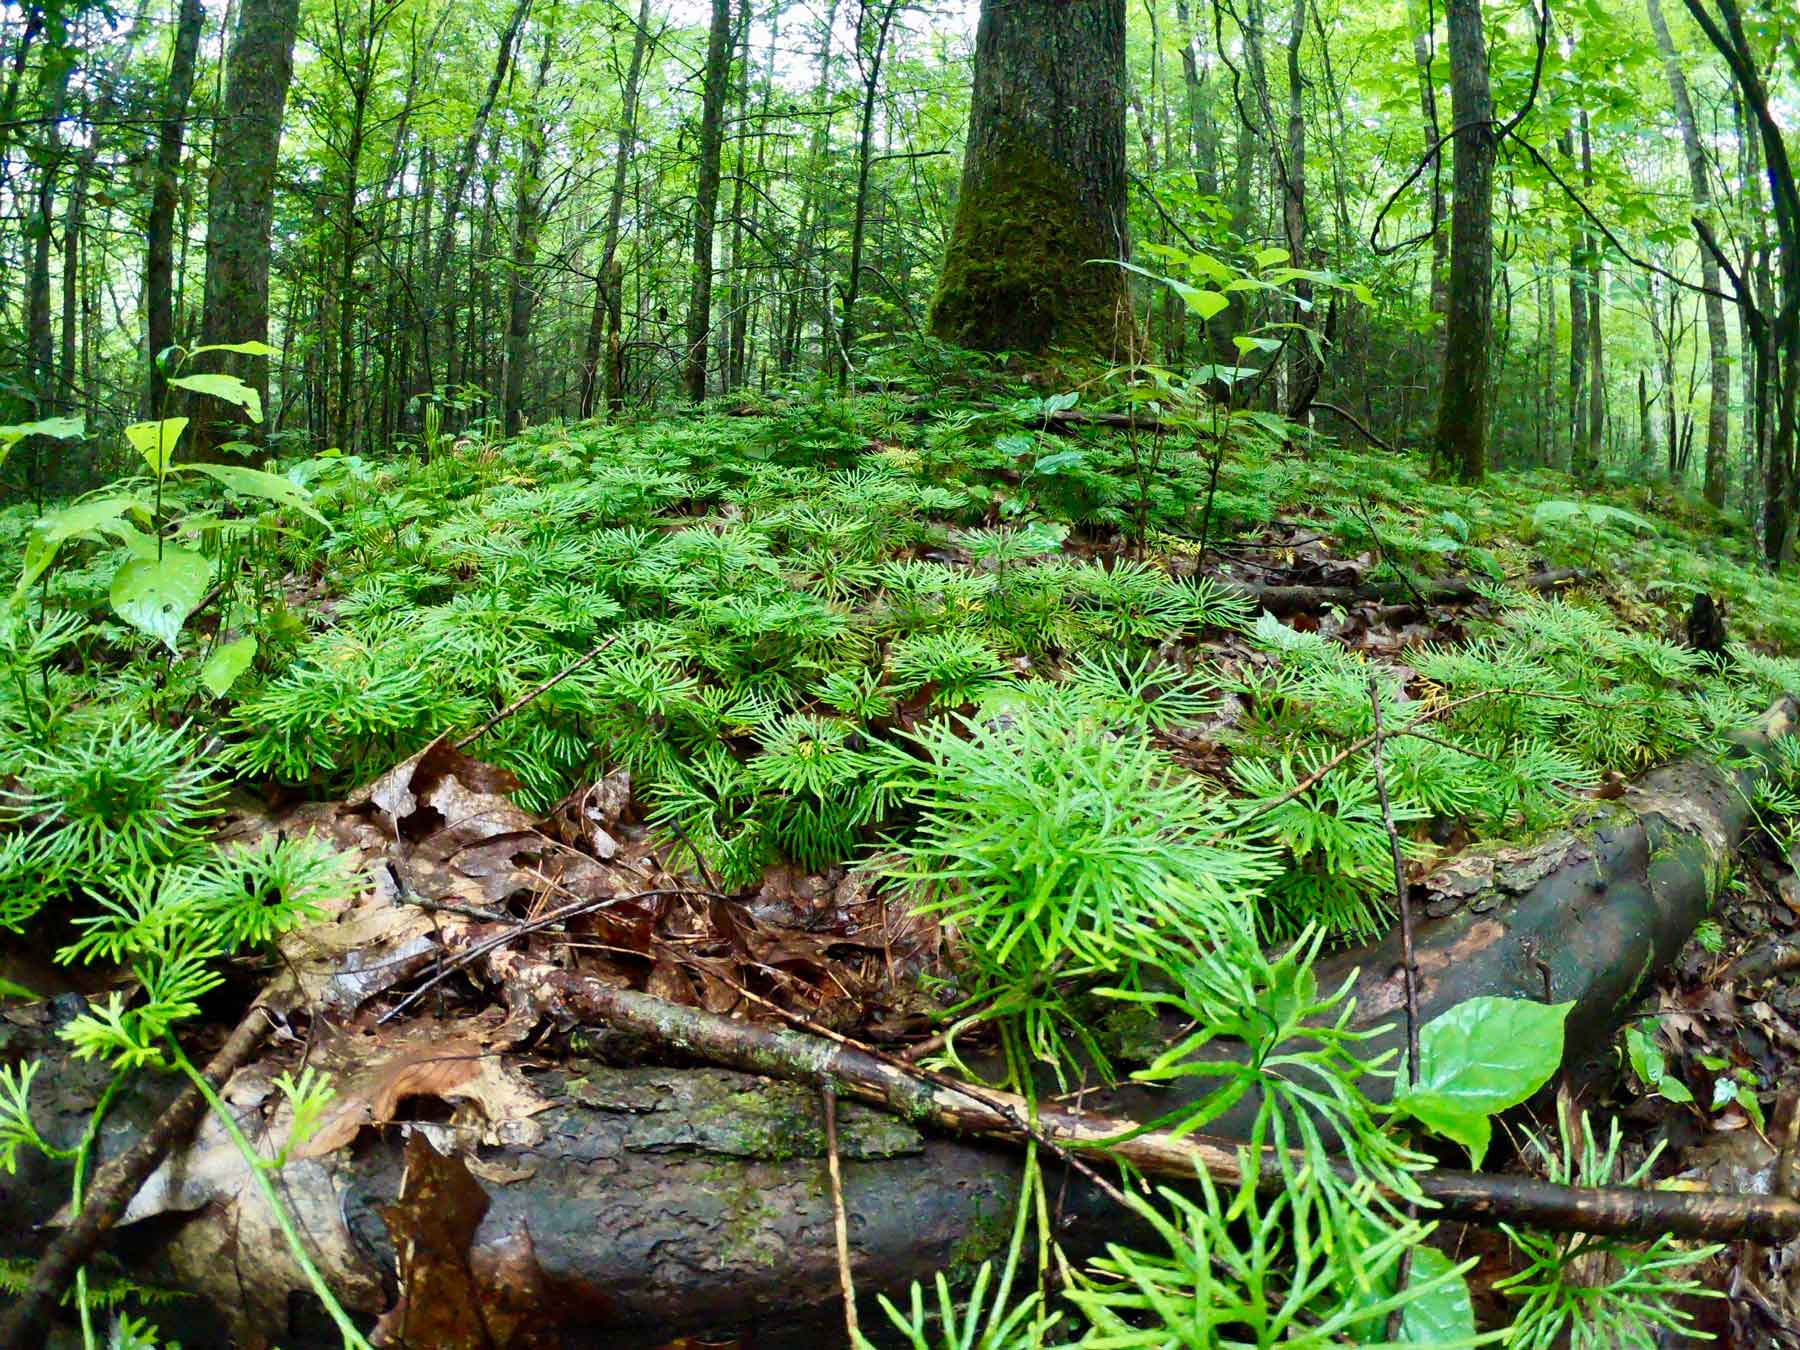 Creeping cedar patch along the Tom Gray Trail in Roan Mountain State Park, Tennessee